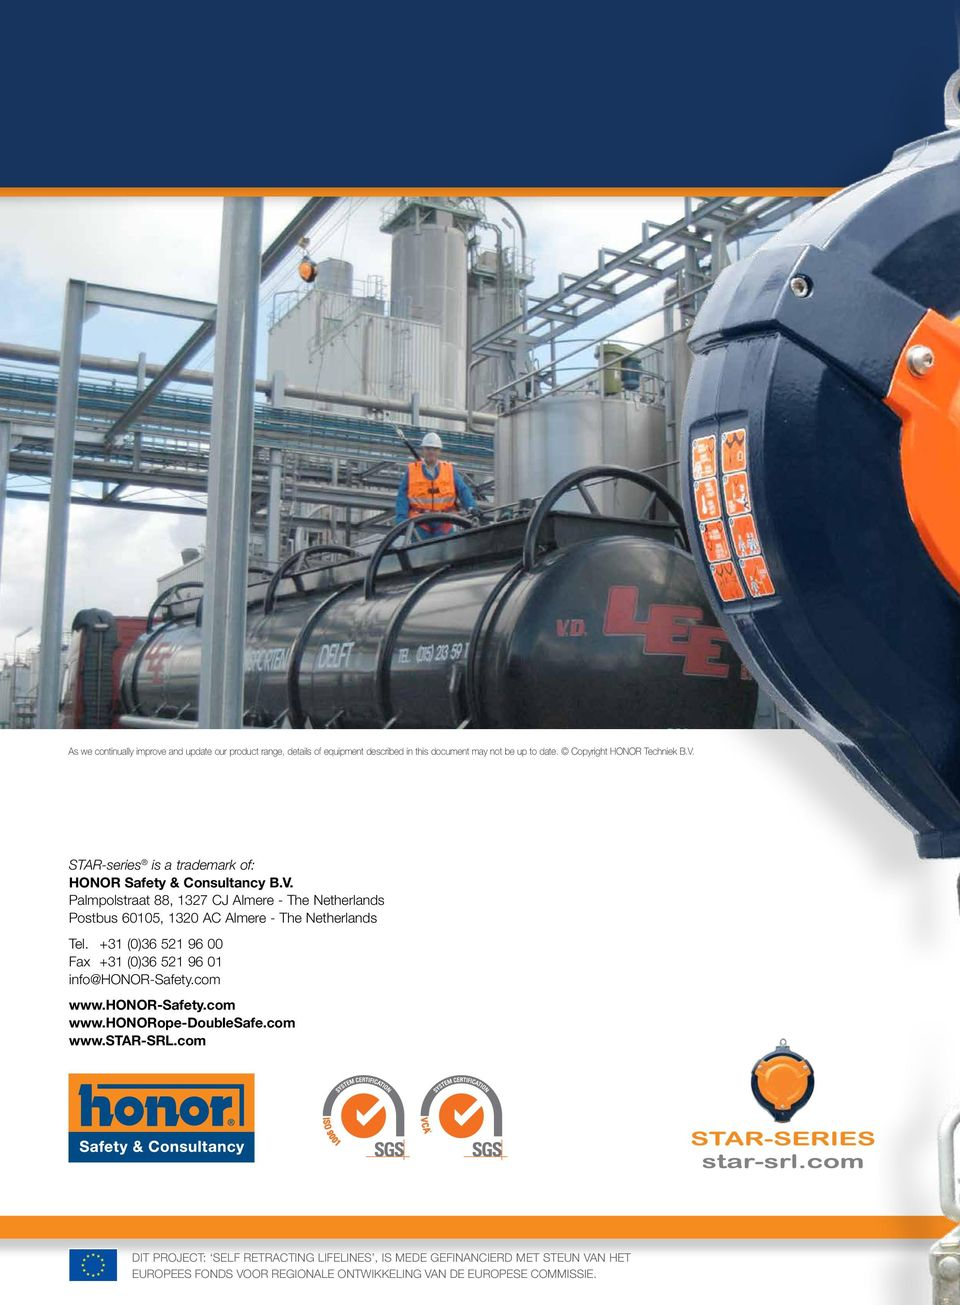 Star-series is a trademark of: HONOR Safety & Consultancy B.V.